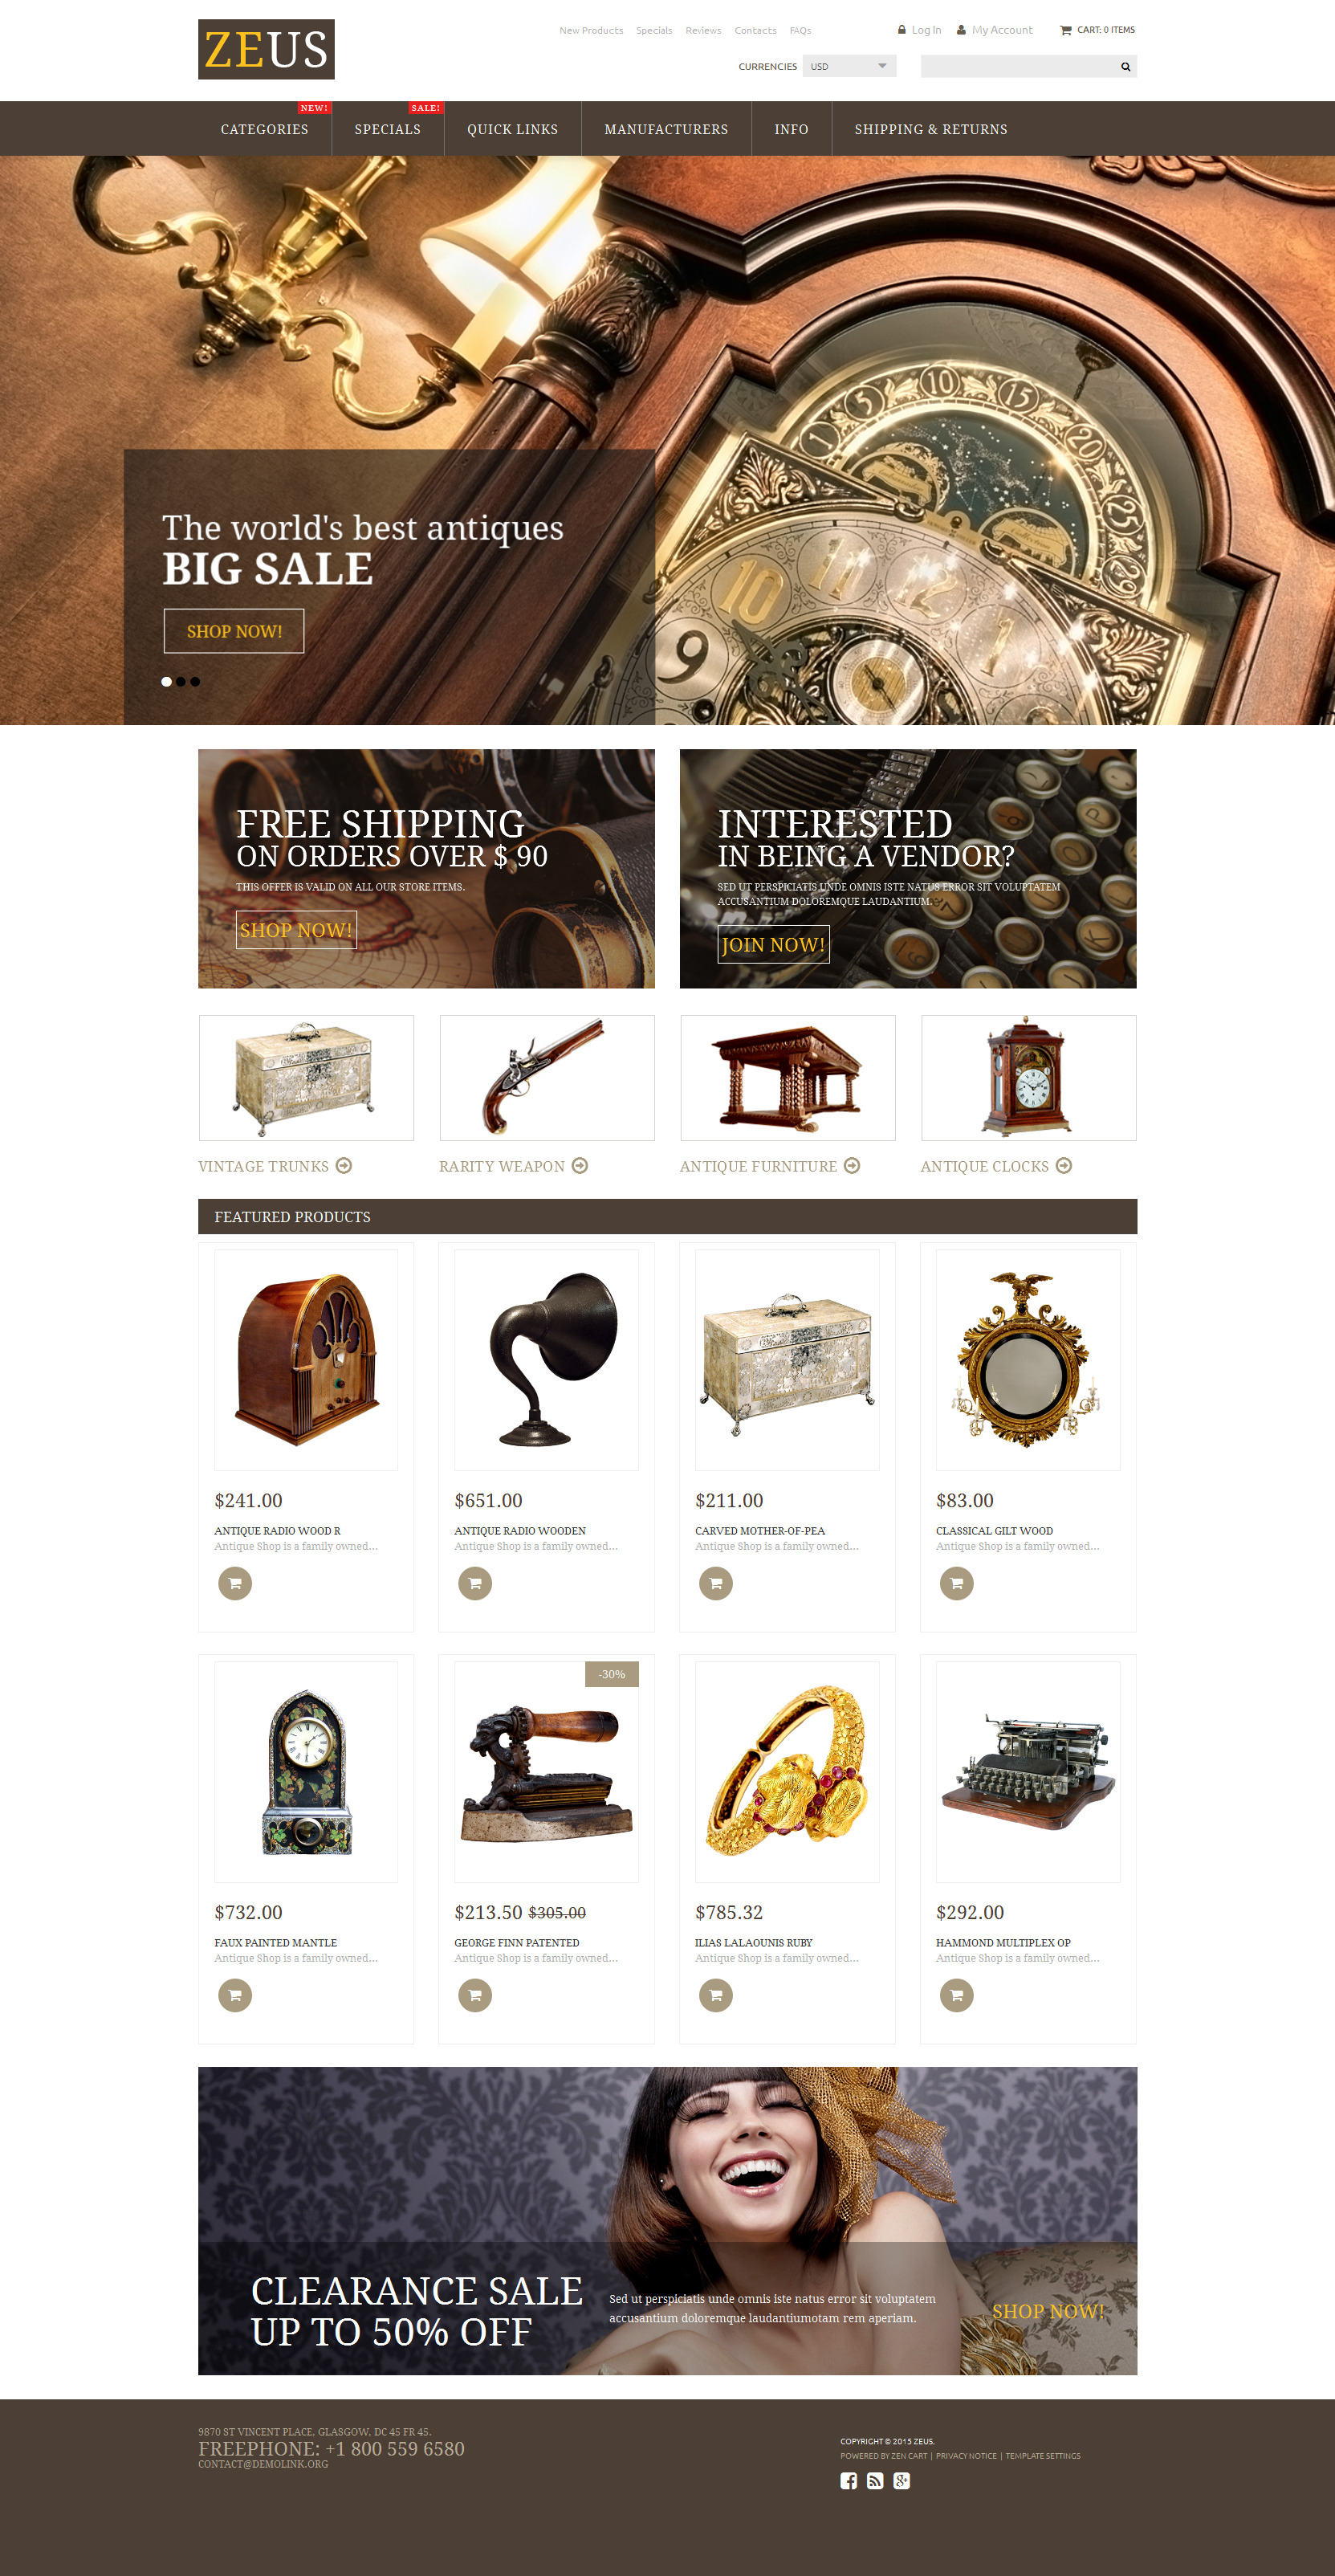 The Zeus Antique Store Zen Cart Design 53946, one of the best ZenCart templates of its kind (most popular, antique), also known as zeus antique store ZenCart template, antiquarian ZenCart template, spirit ZenCart template, products ZenCart template, furniture ZenCart template, weapon ZenCart template, clock ZenCart template, books ZenCart template, armor ZenCart template, statuary ZenCart template, sculpture ZenCart template, accessory ZenCart template, crockery ZenCart template, maps ZenCart template, coins ZenCart template, jewelry ZenCart template, boxes dealers ZenCart template, rare ZenCart template, old ZenCart template, rarity ZenCart template, collection and related with zeus antique store, antiquarian, spirit, products, furniture, weapon, clock, books, armor, statuary, sculpture, accessory, crockery, maps, coins, jewelry, boxes dealers, rare, old, rarity, collection, etc.